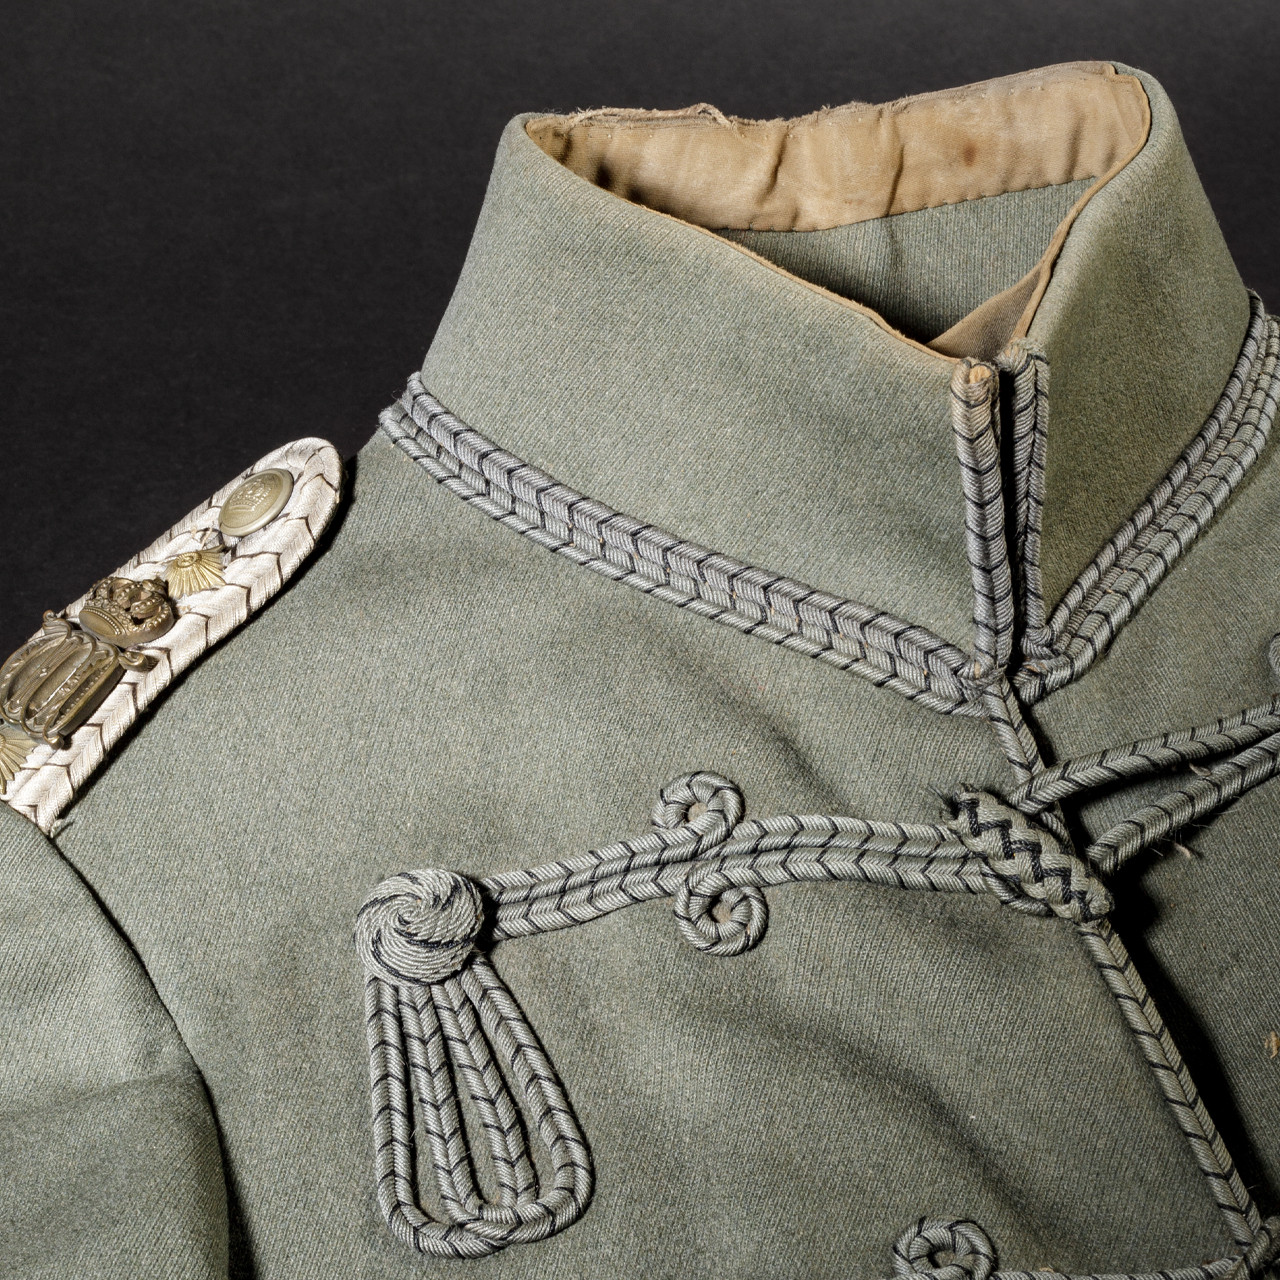 International Orders and Military Collectibles